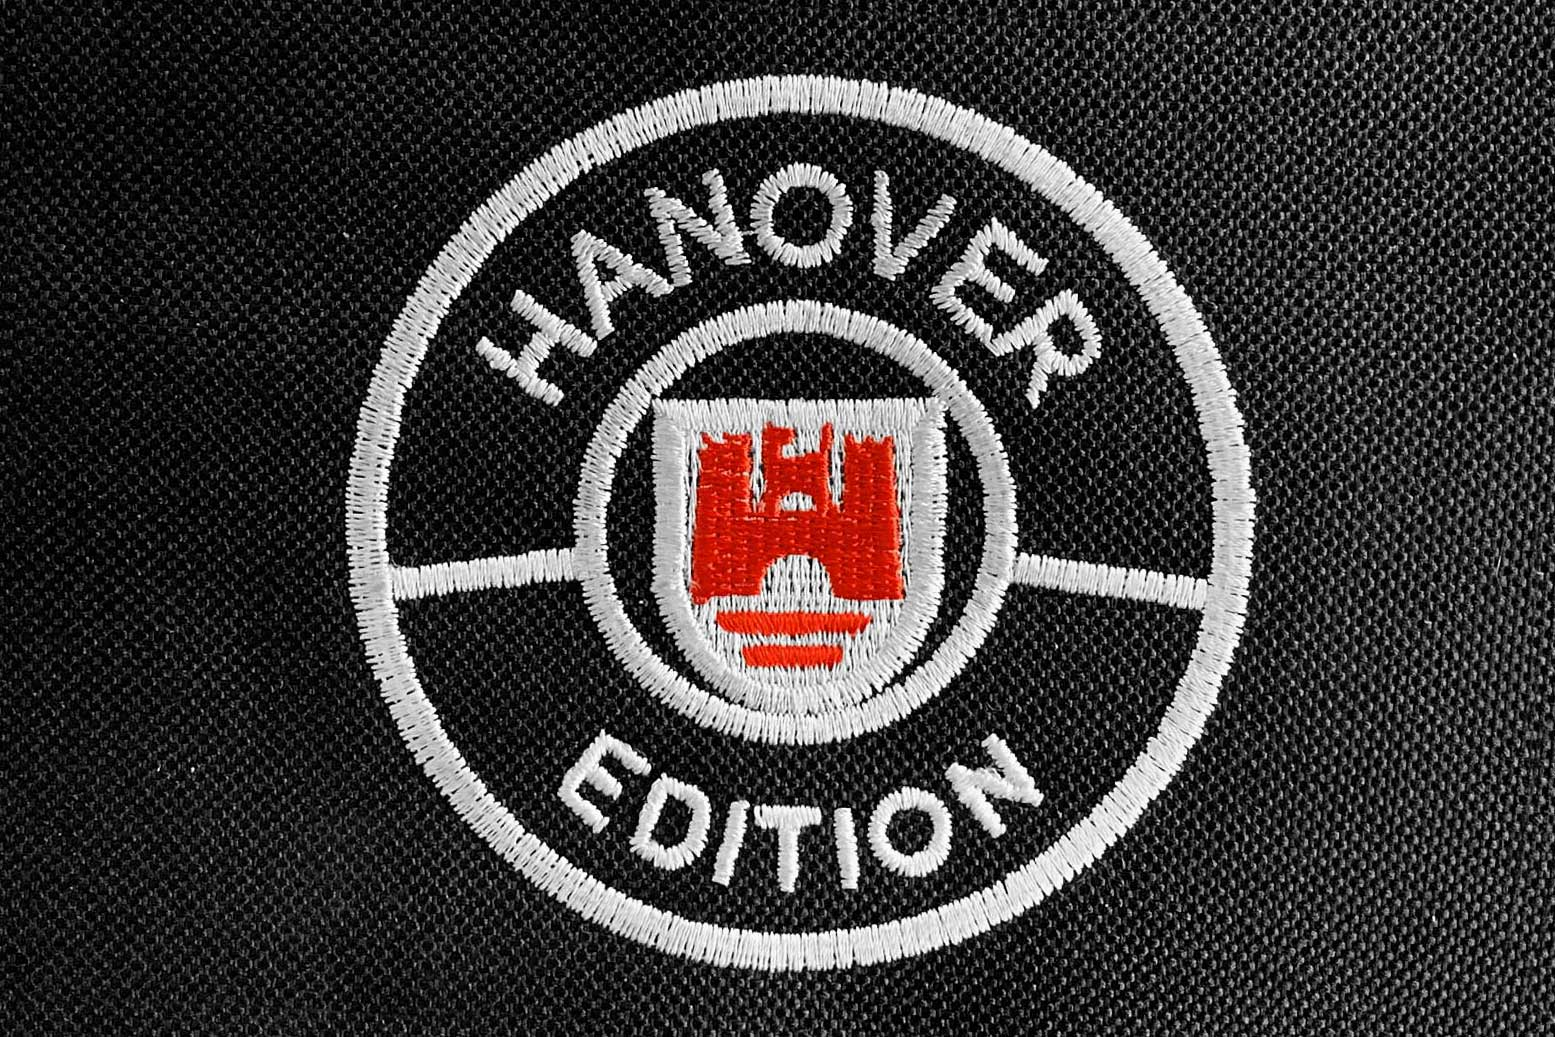 Hanover Edition logo show in white with red accent embroidered into black carpet